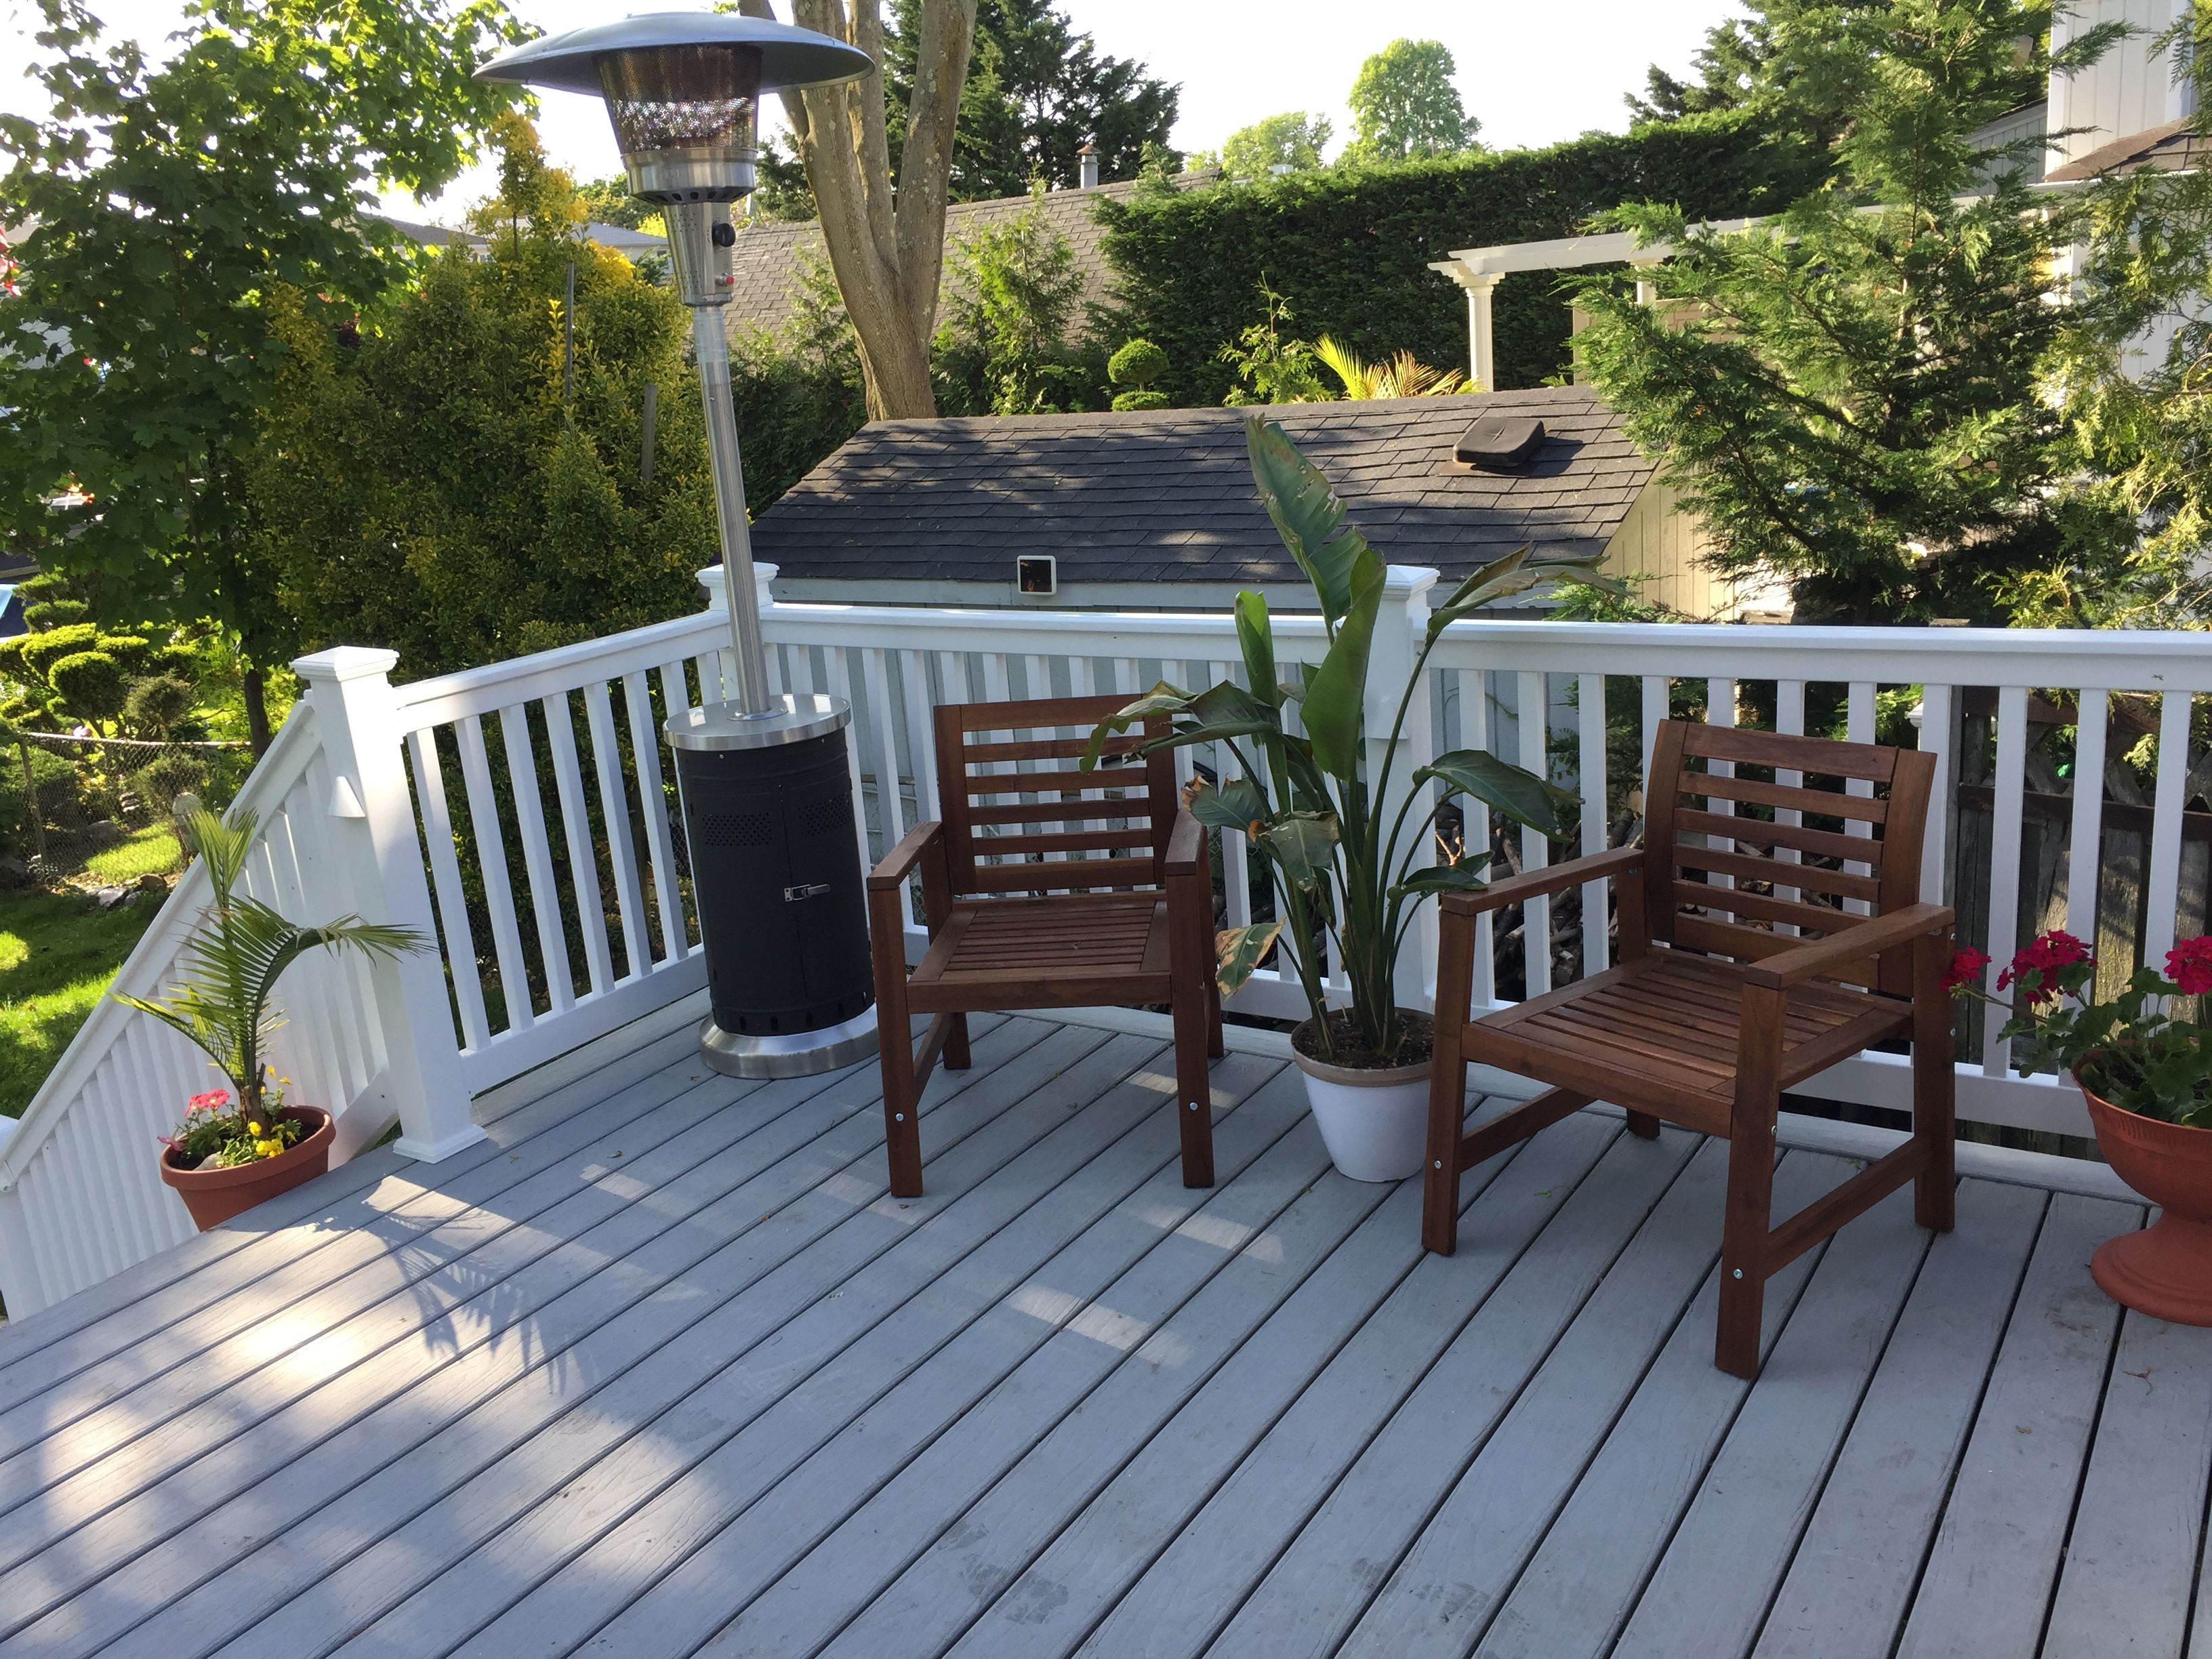 Beachhouse Grey Composite Decking From Lowes Deck Designs Backyard Composite Decking Colors Backyard